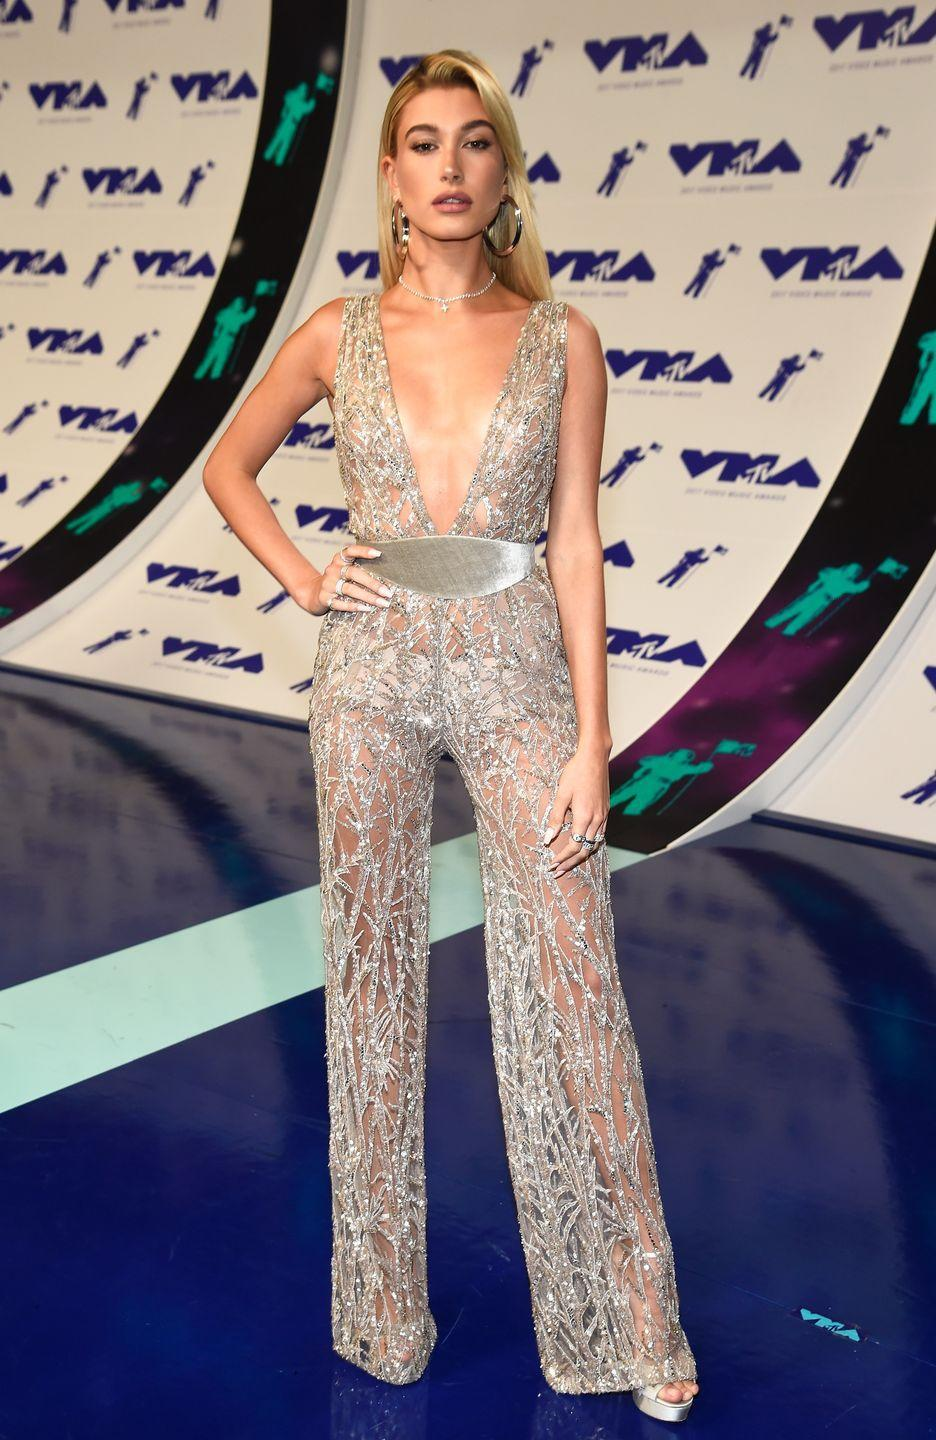 <p>Some things never change. And Hailey Baldwin serving us major looks at the VMAs in 2017 is one of those things. </p>